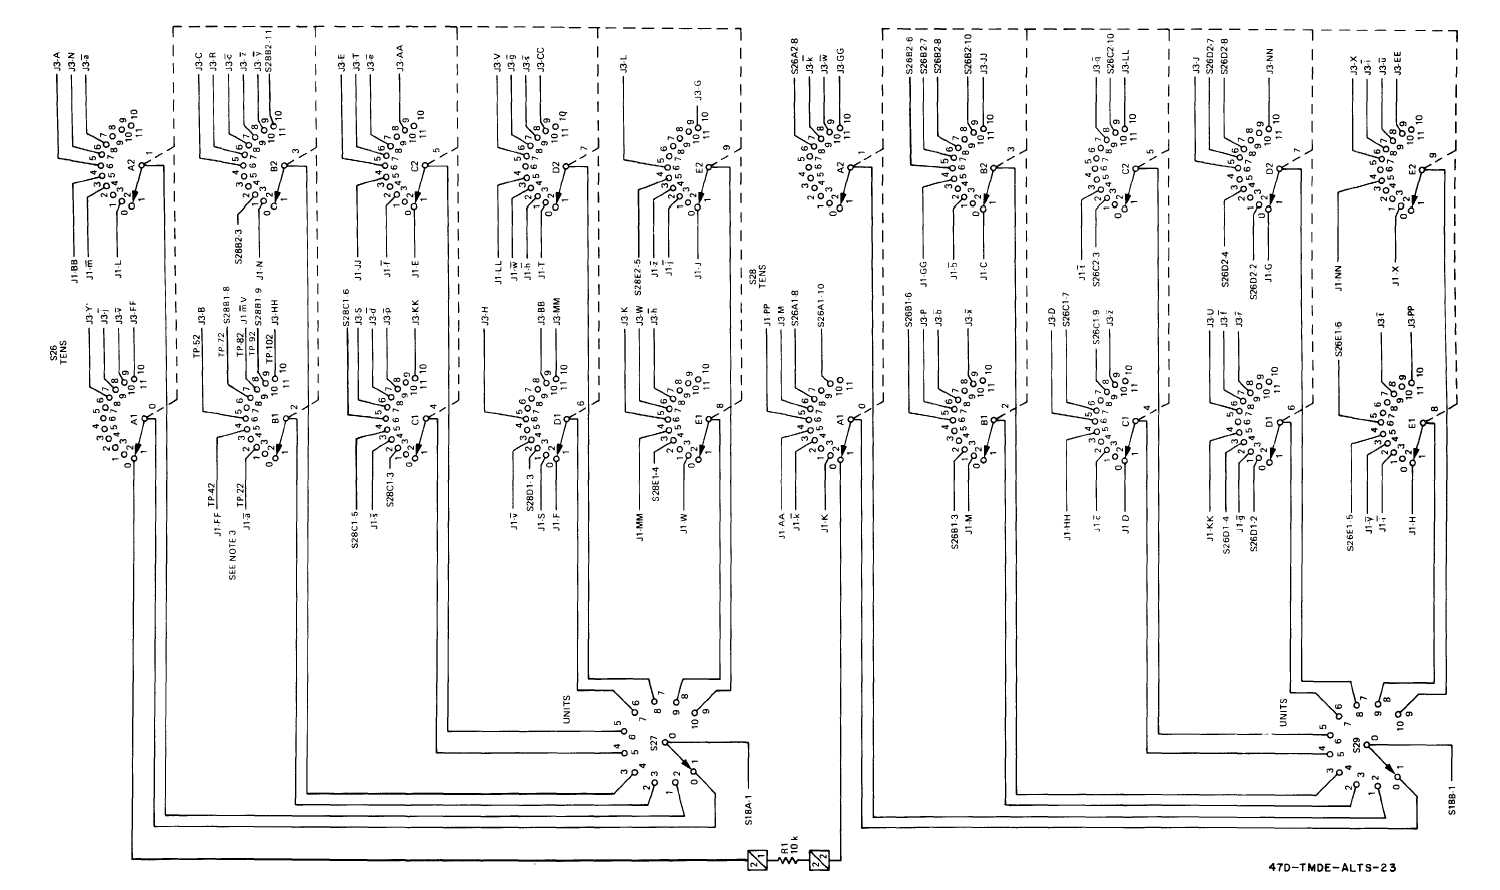 FO-8. AFCS Line Test Set Schematic Diagram (Sheet 2 of 2)